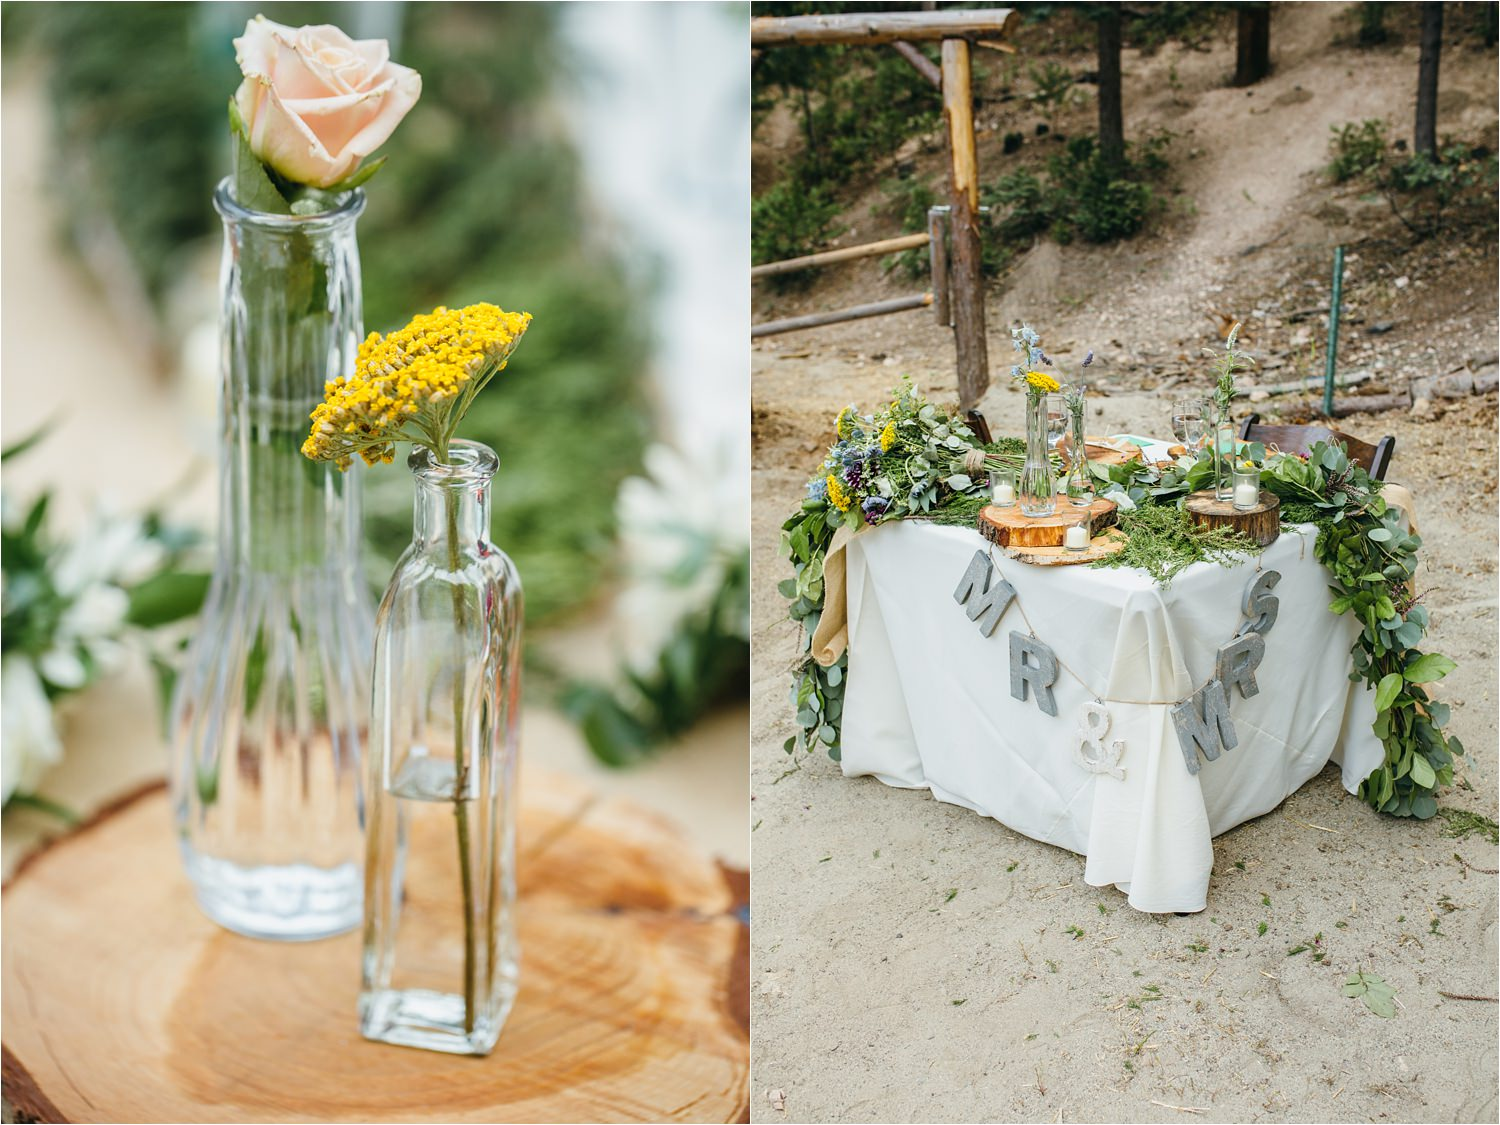 Rustic Wedding Decor - Mountain Wedding Decor - DIY Wedding Details - Mountain Wedding Ideas - https://brittneyhannonphotography.com